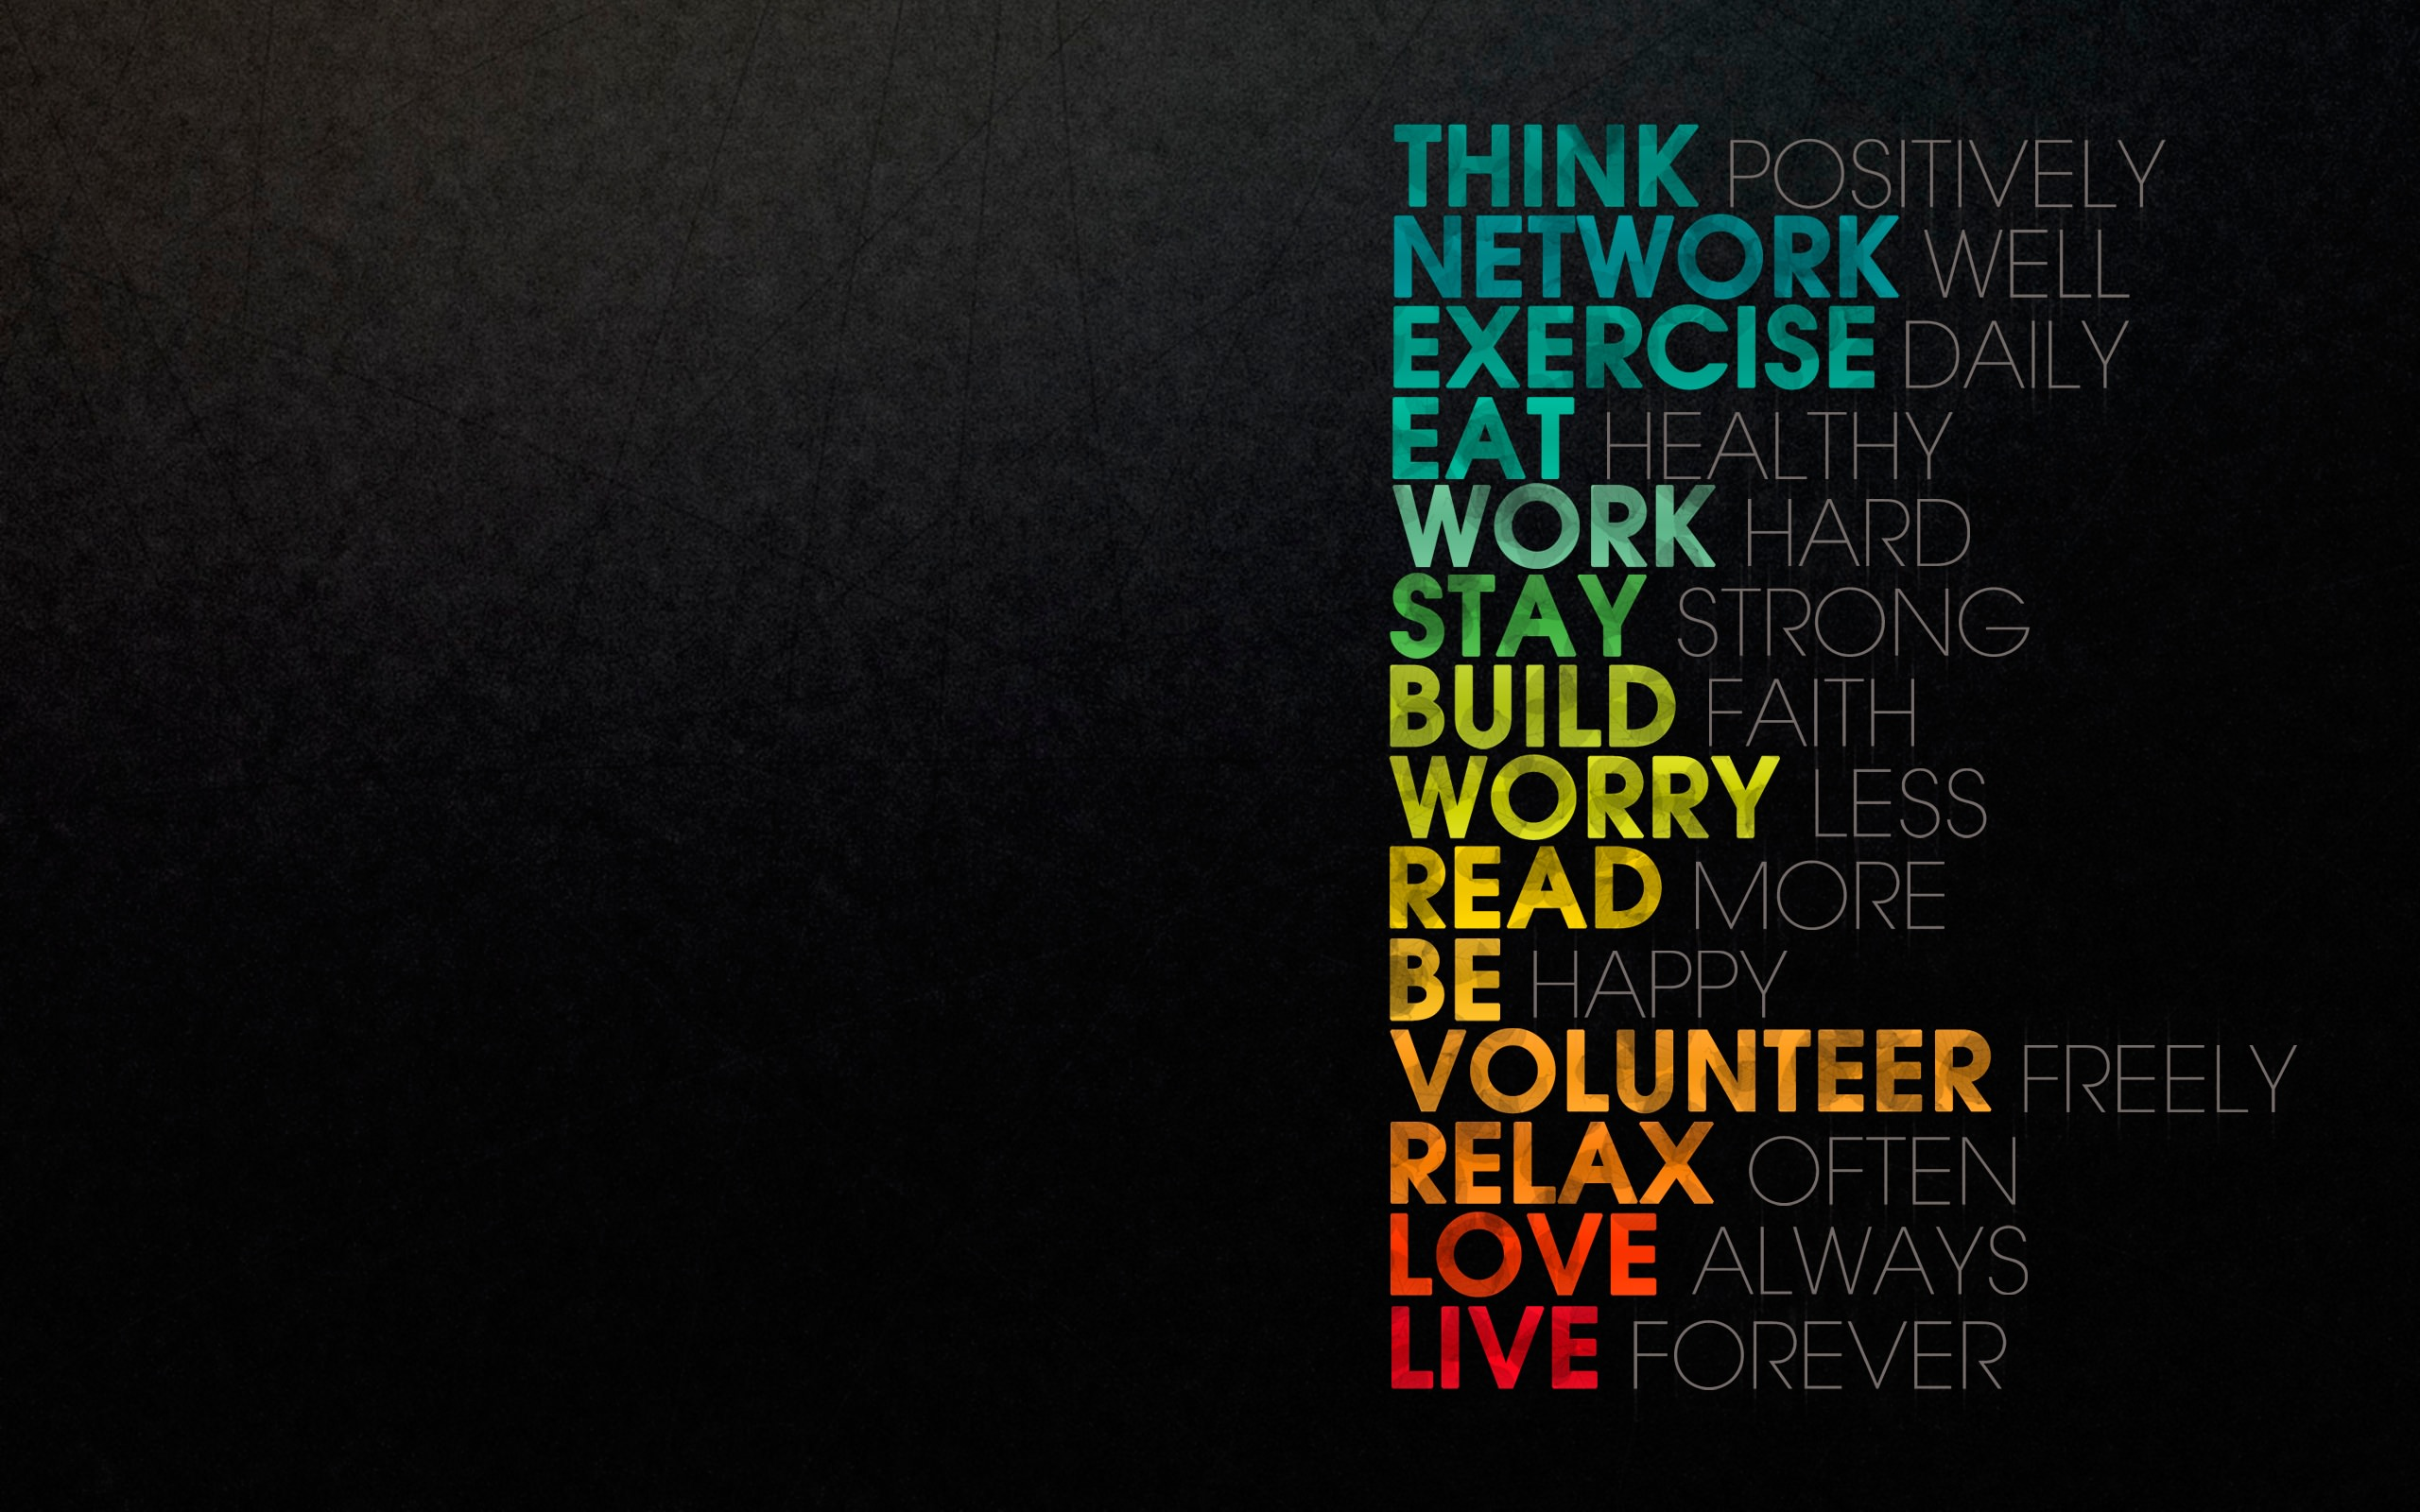 35 inspirational typography hd wallpapers for desktop, iphone and